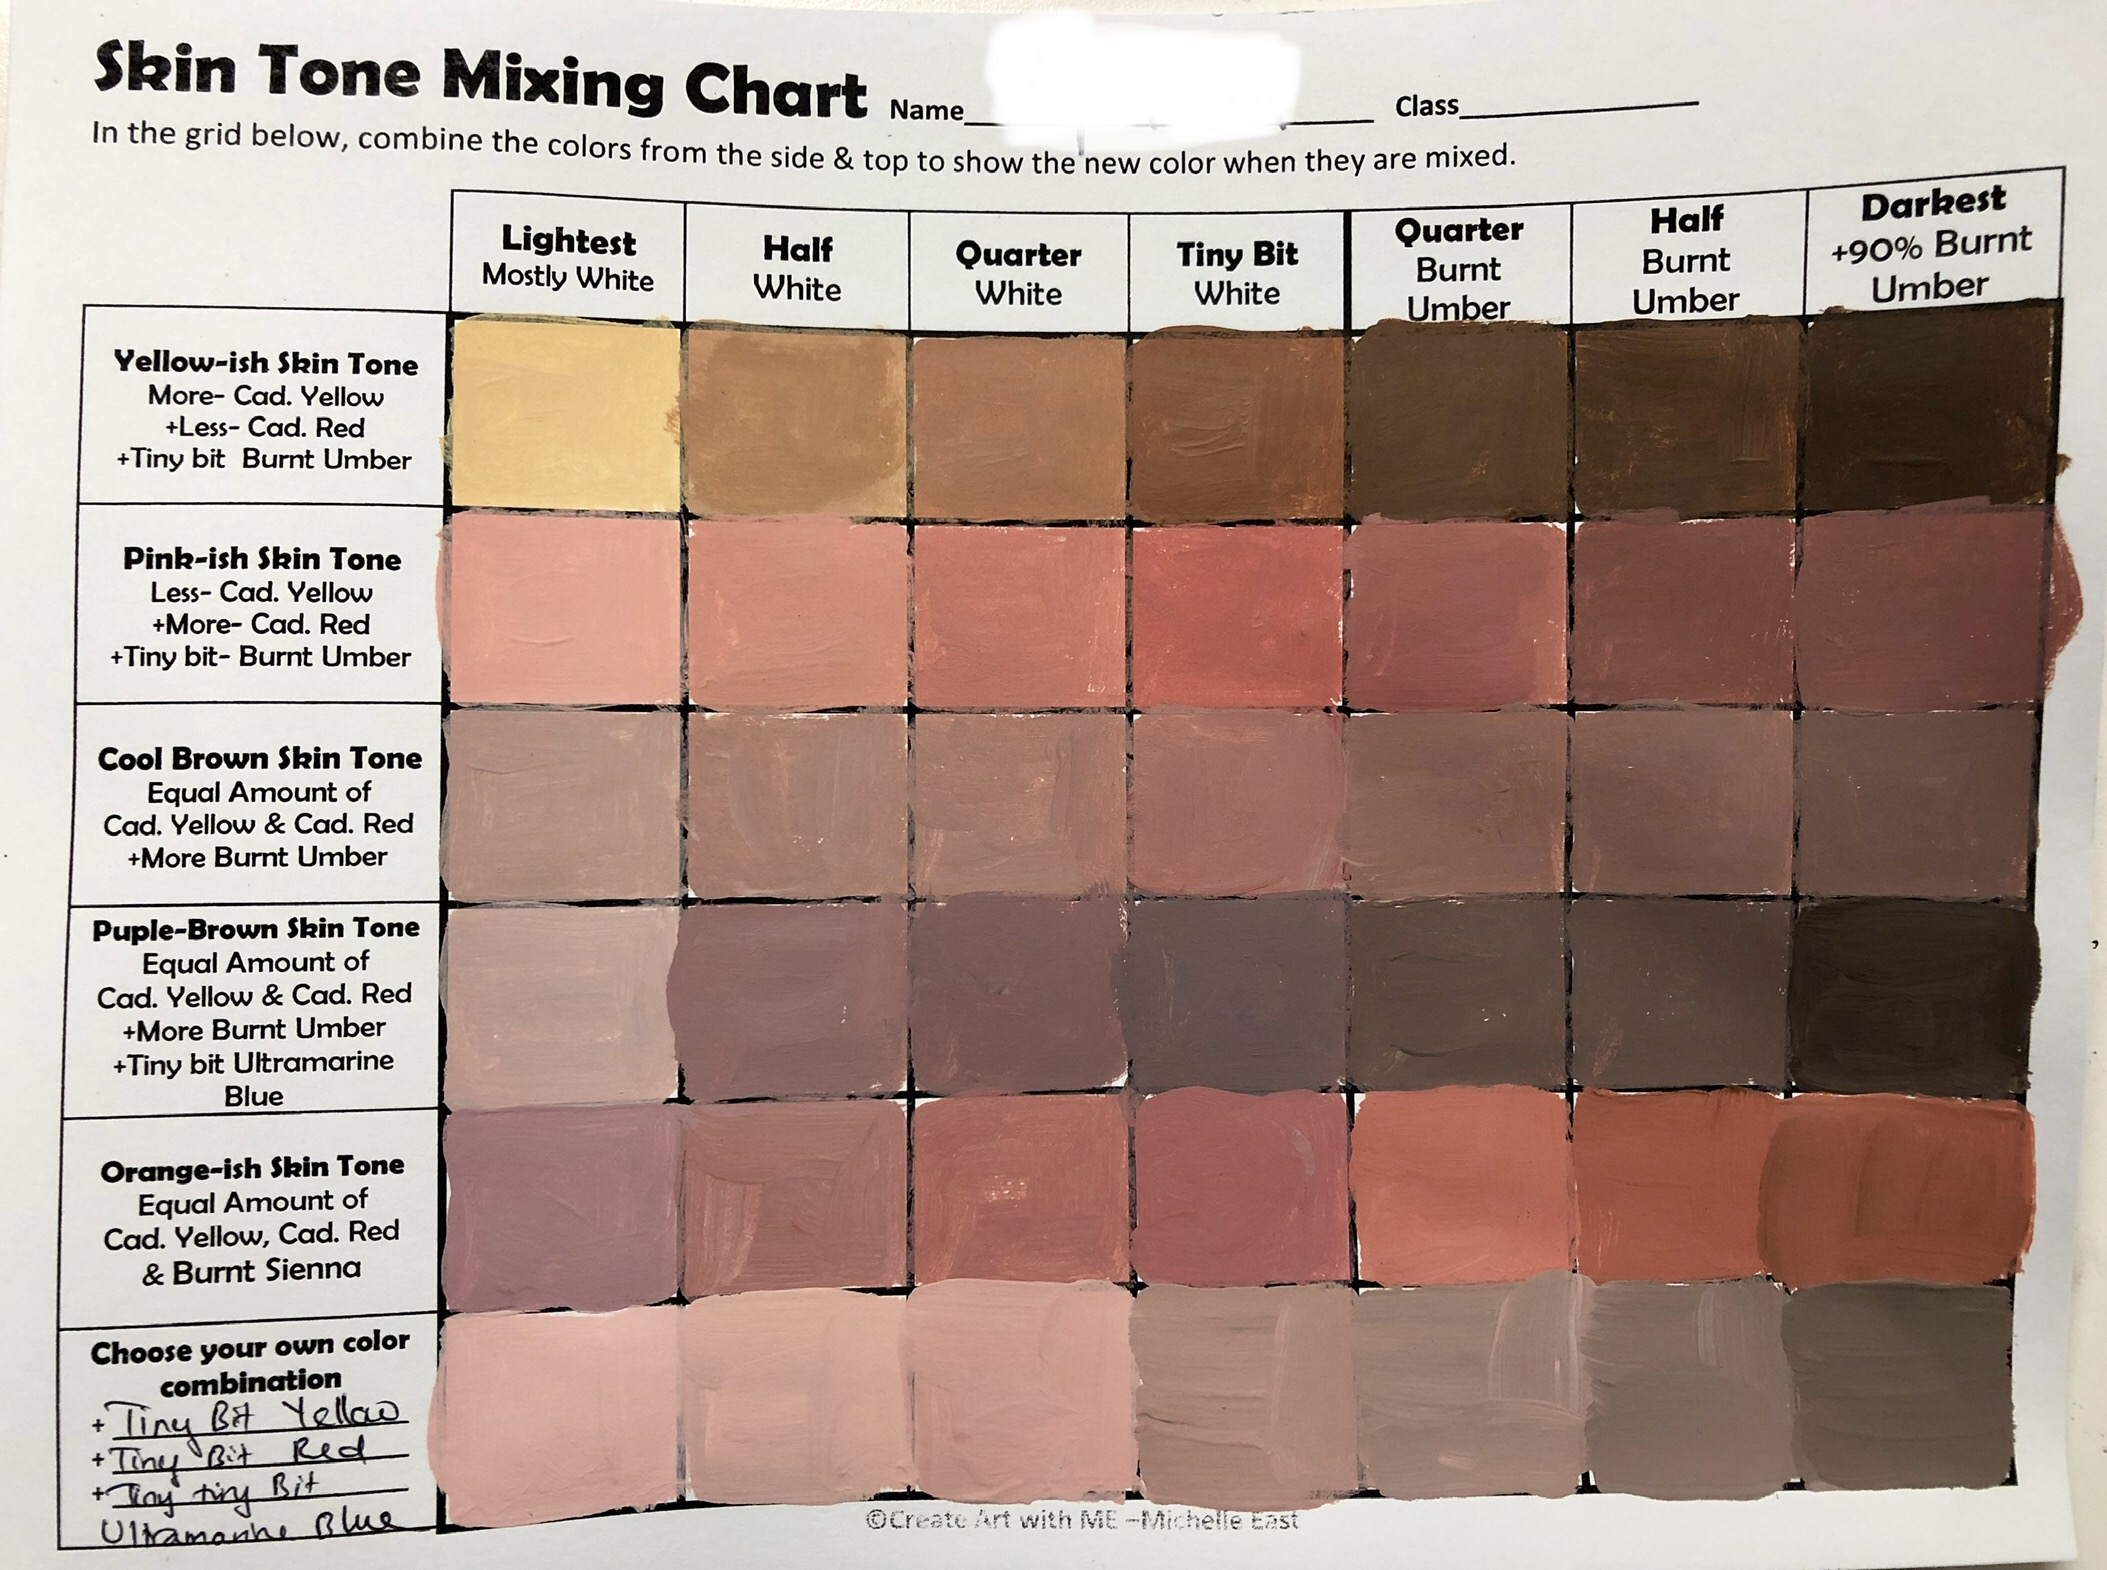 medium resolution of Skin Tone Mixing Chart Example - Create Art with ME